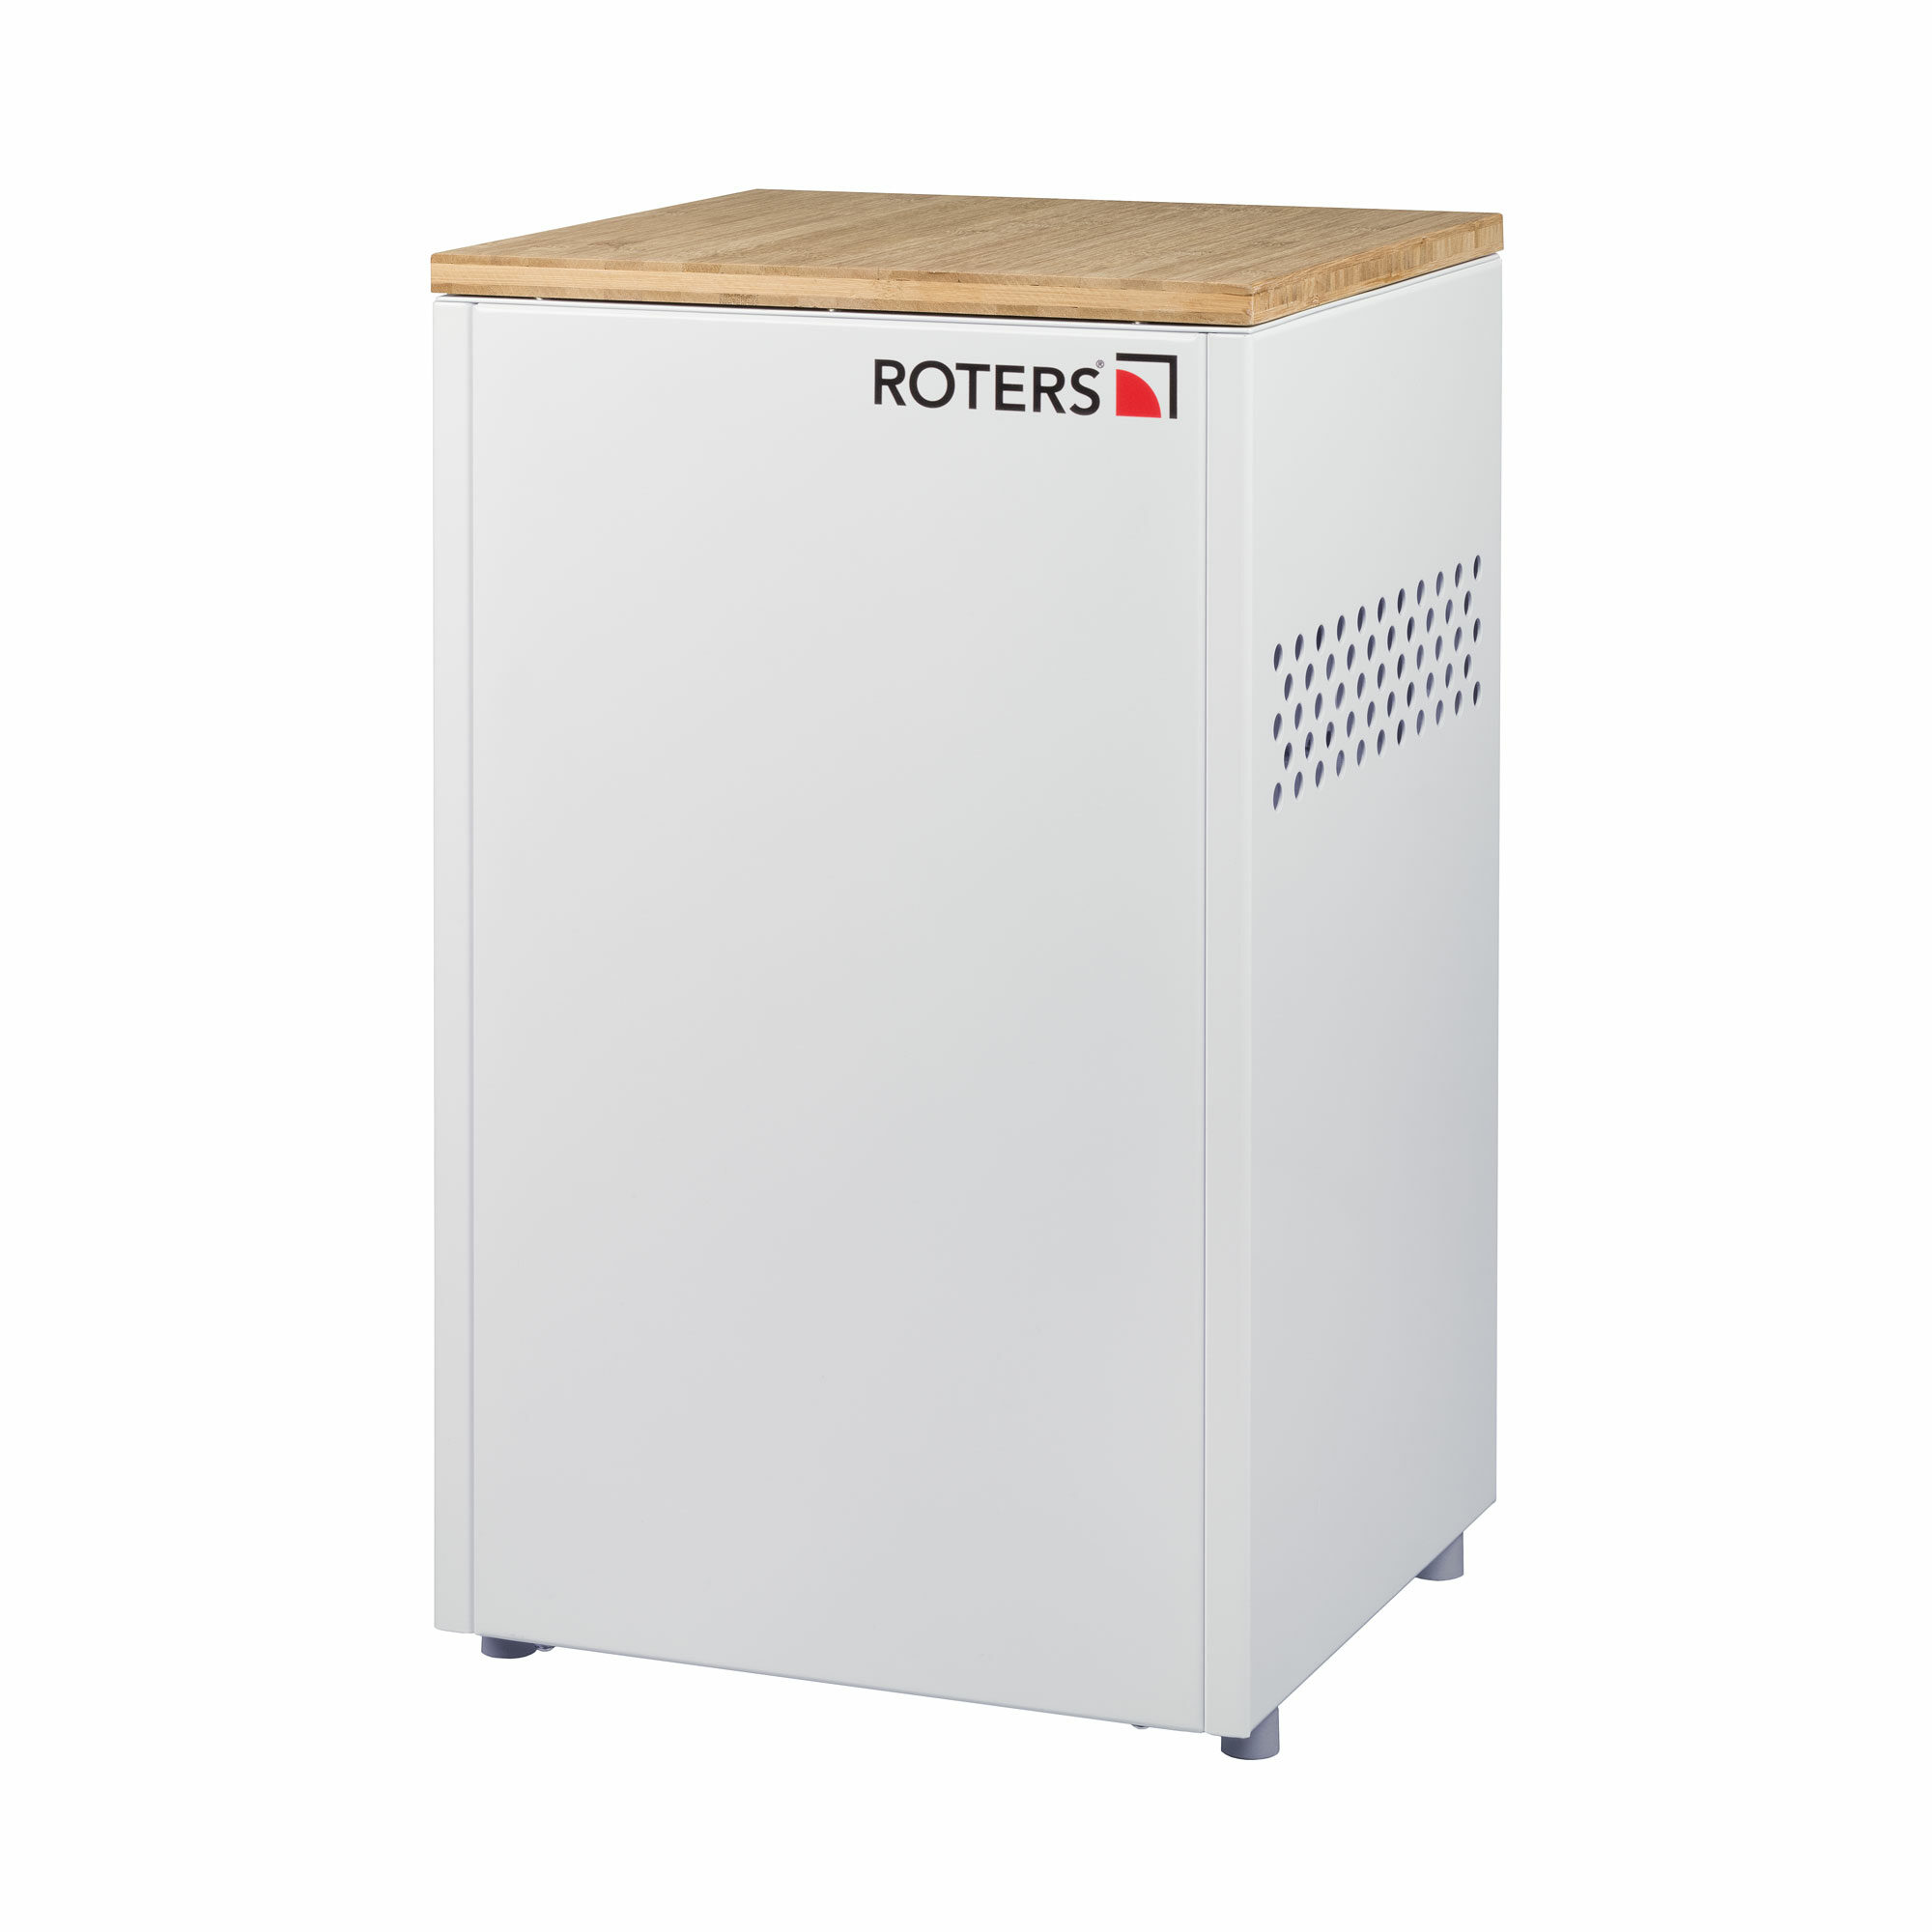 roters fxg500db 003